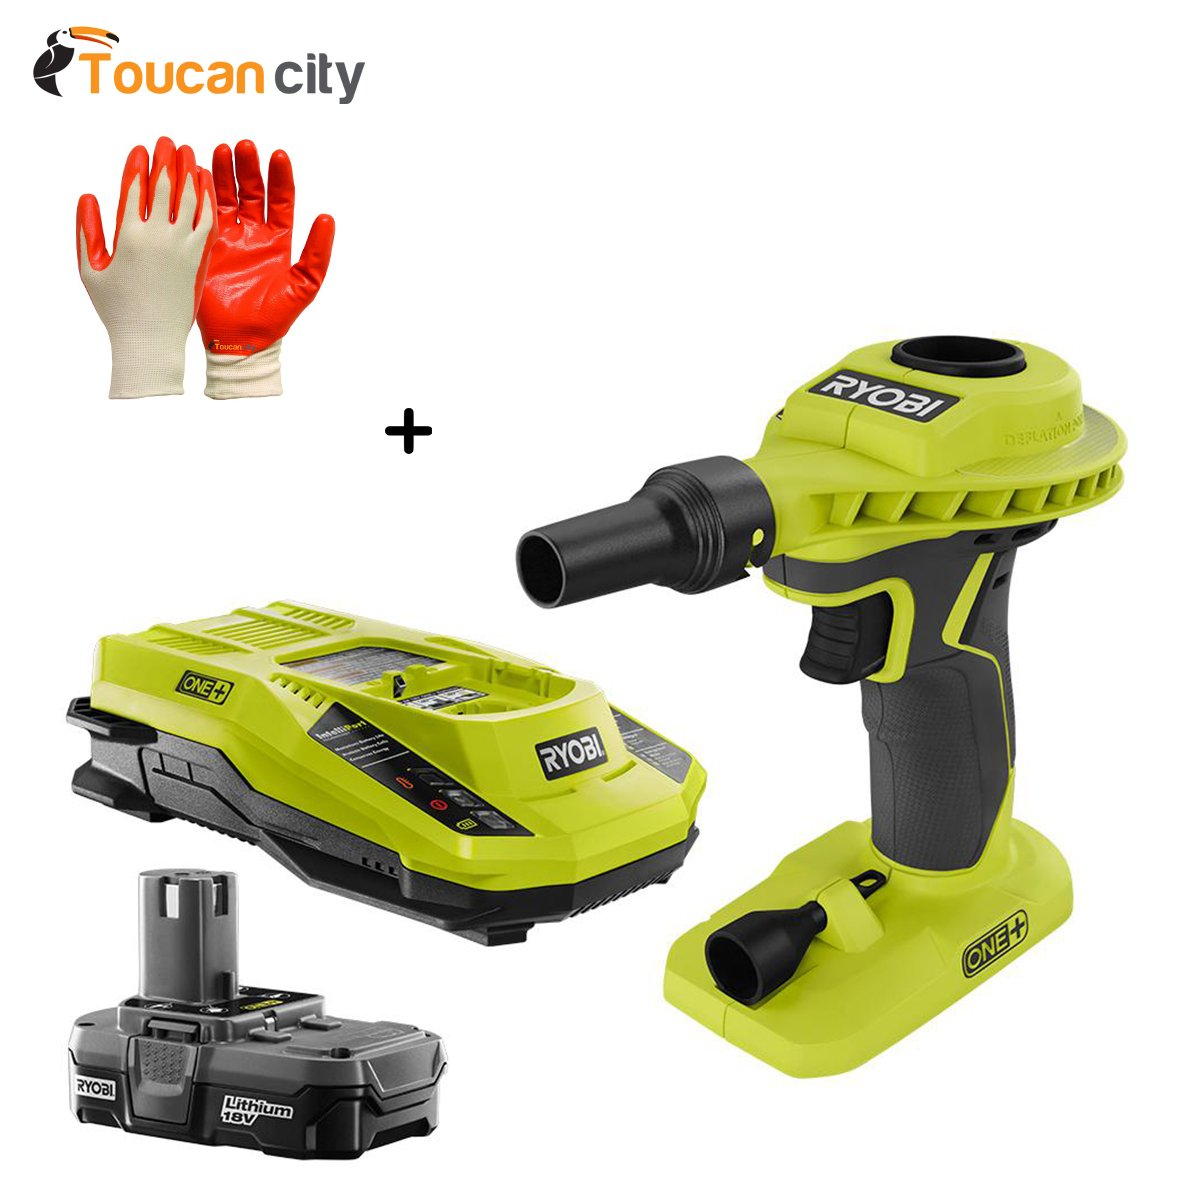 RYOBI 18-Volt High Power Volume Inflator with Compact Battery and Charger P738-P128 and Toucan City Nitrile Dip Gloves(5-Pack)